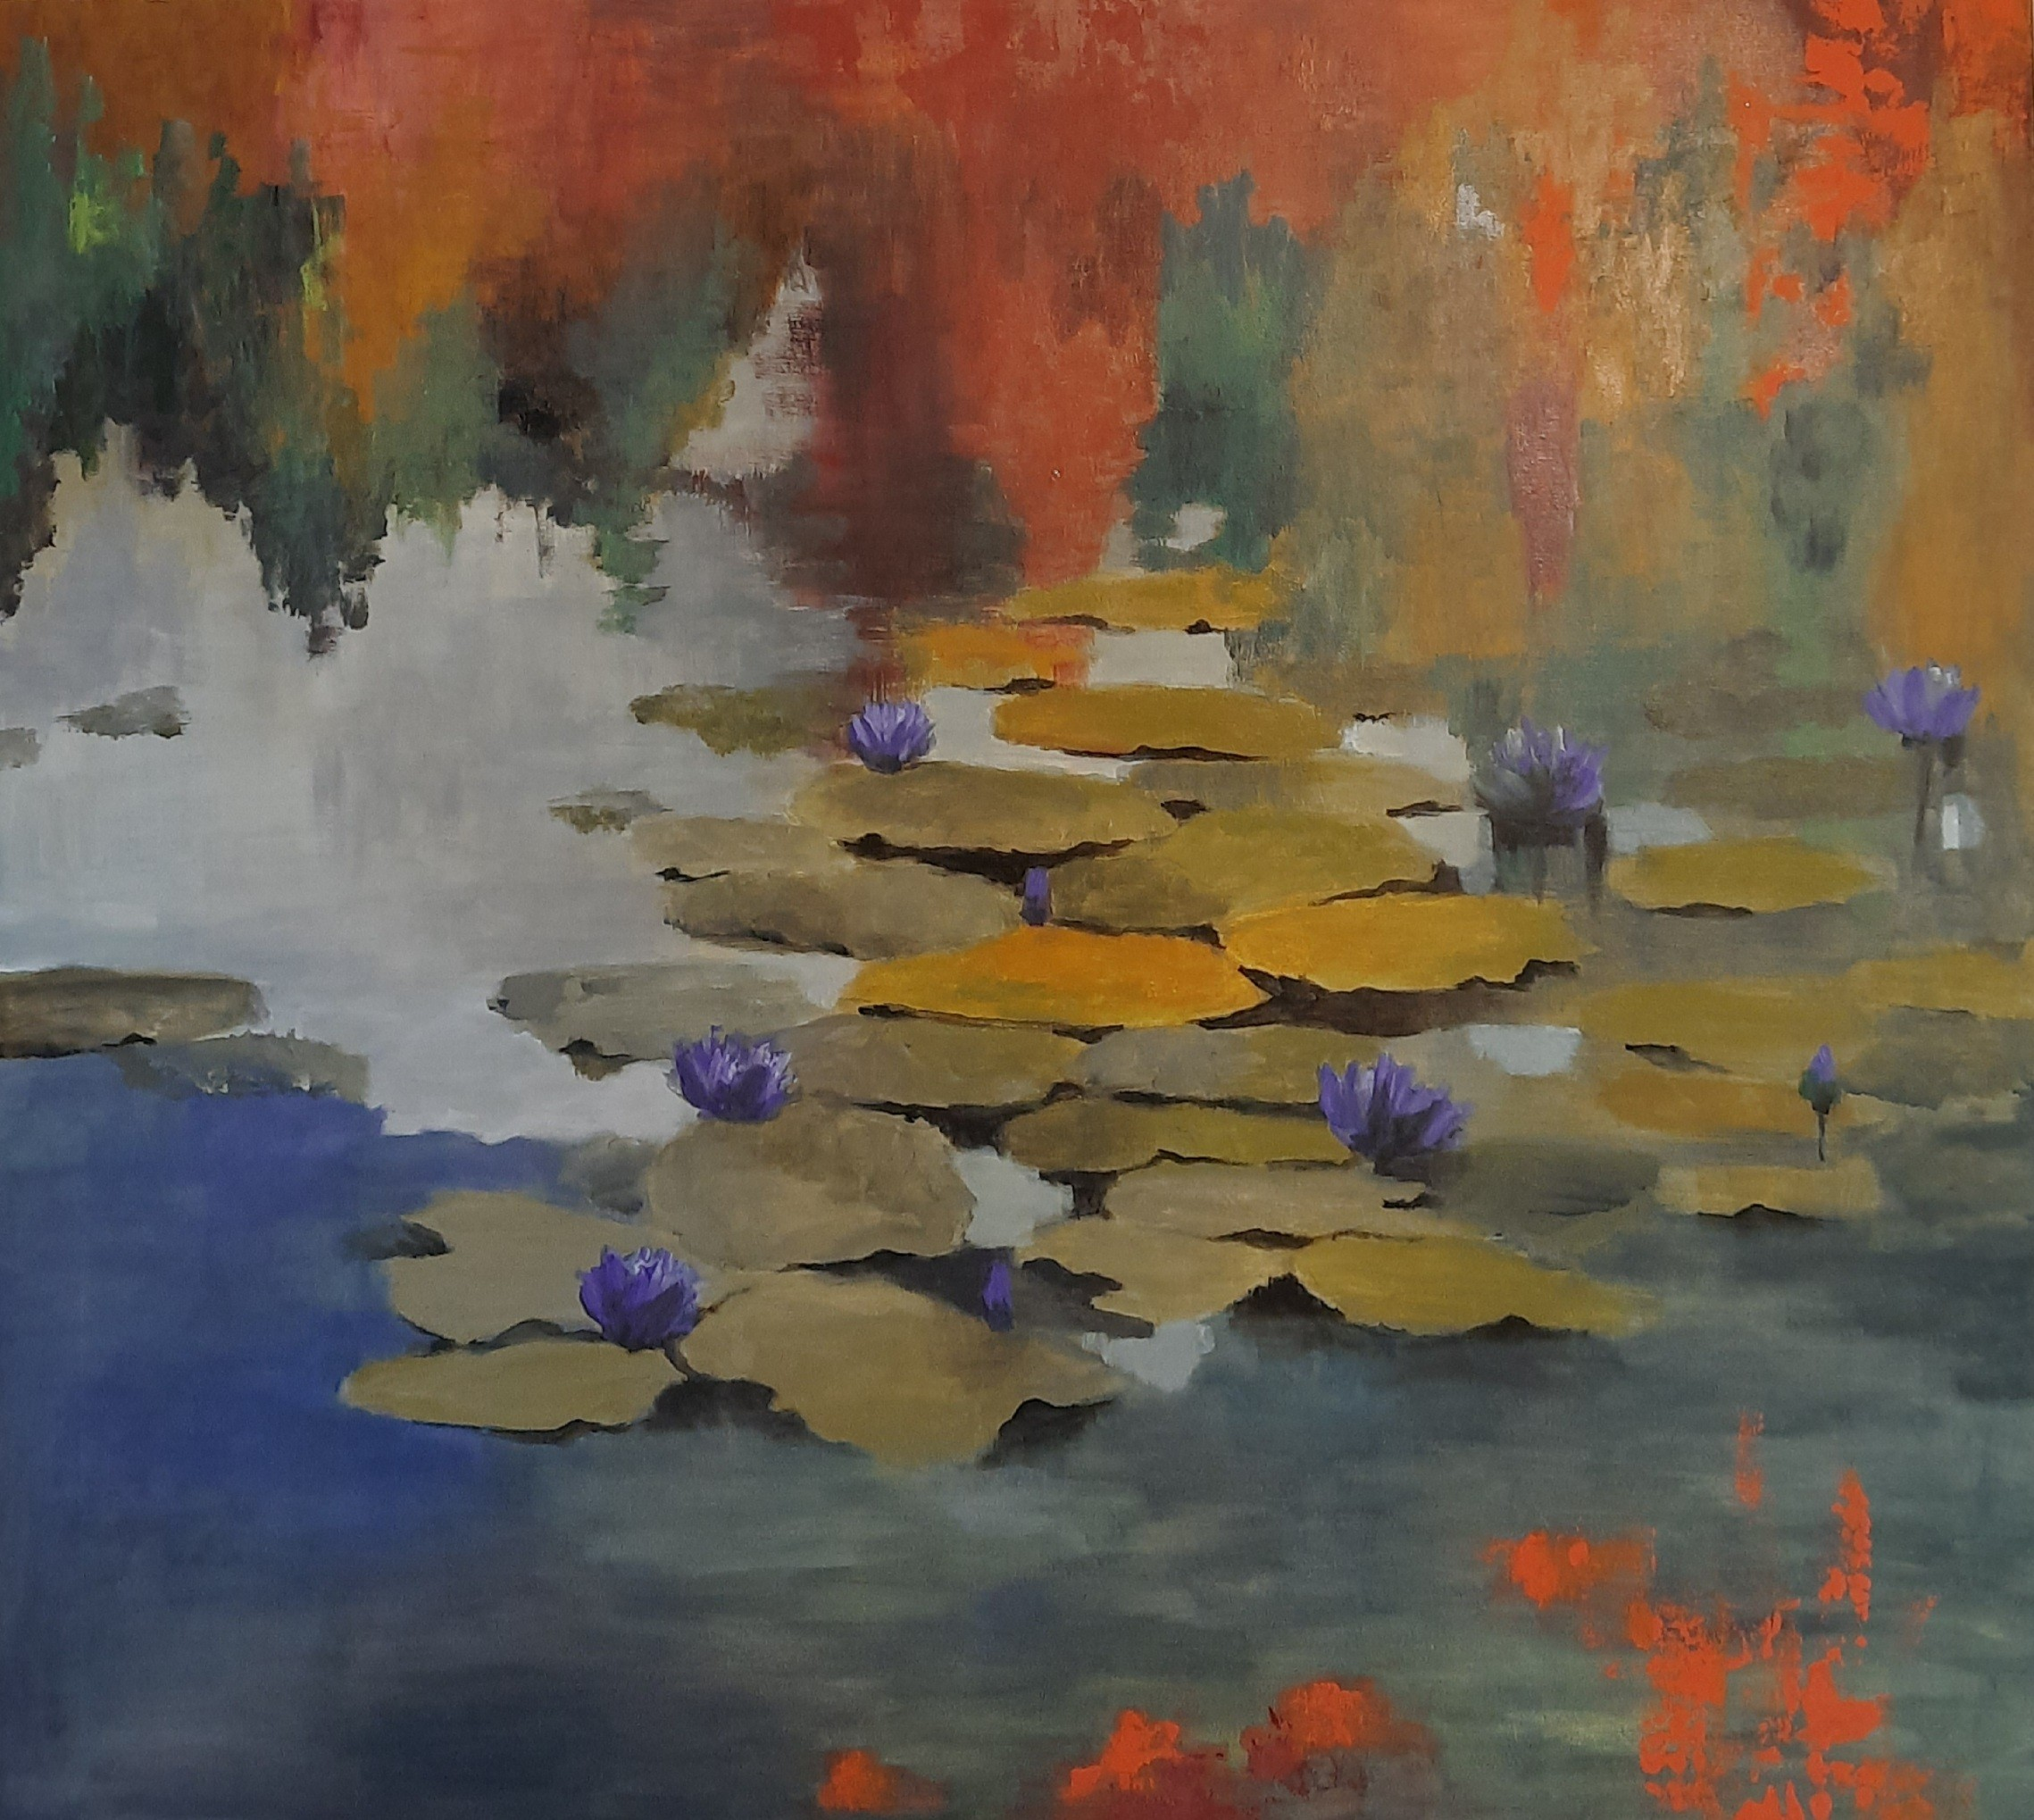 Water lilies in dusky waters 3 by Jean wijesekera